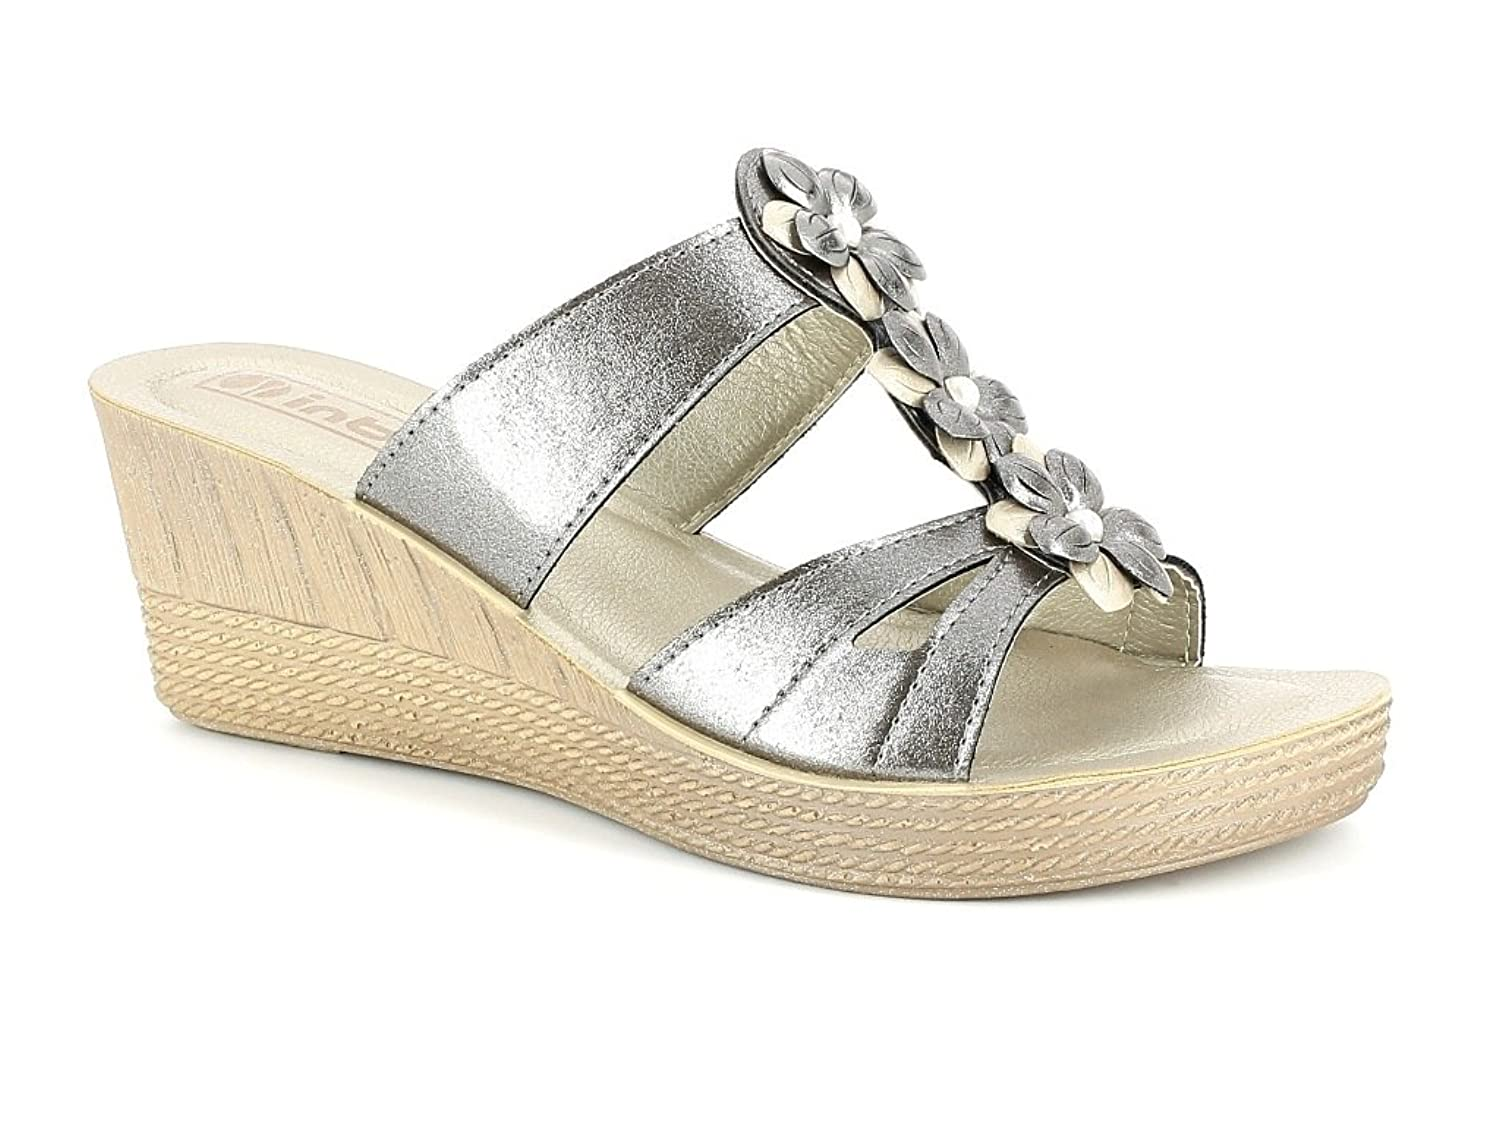 New Womans Stud Sliders Platform Mule Summer Sandals Wedge Slip On Shoes Size